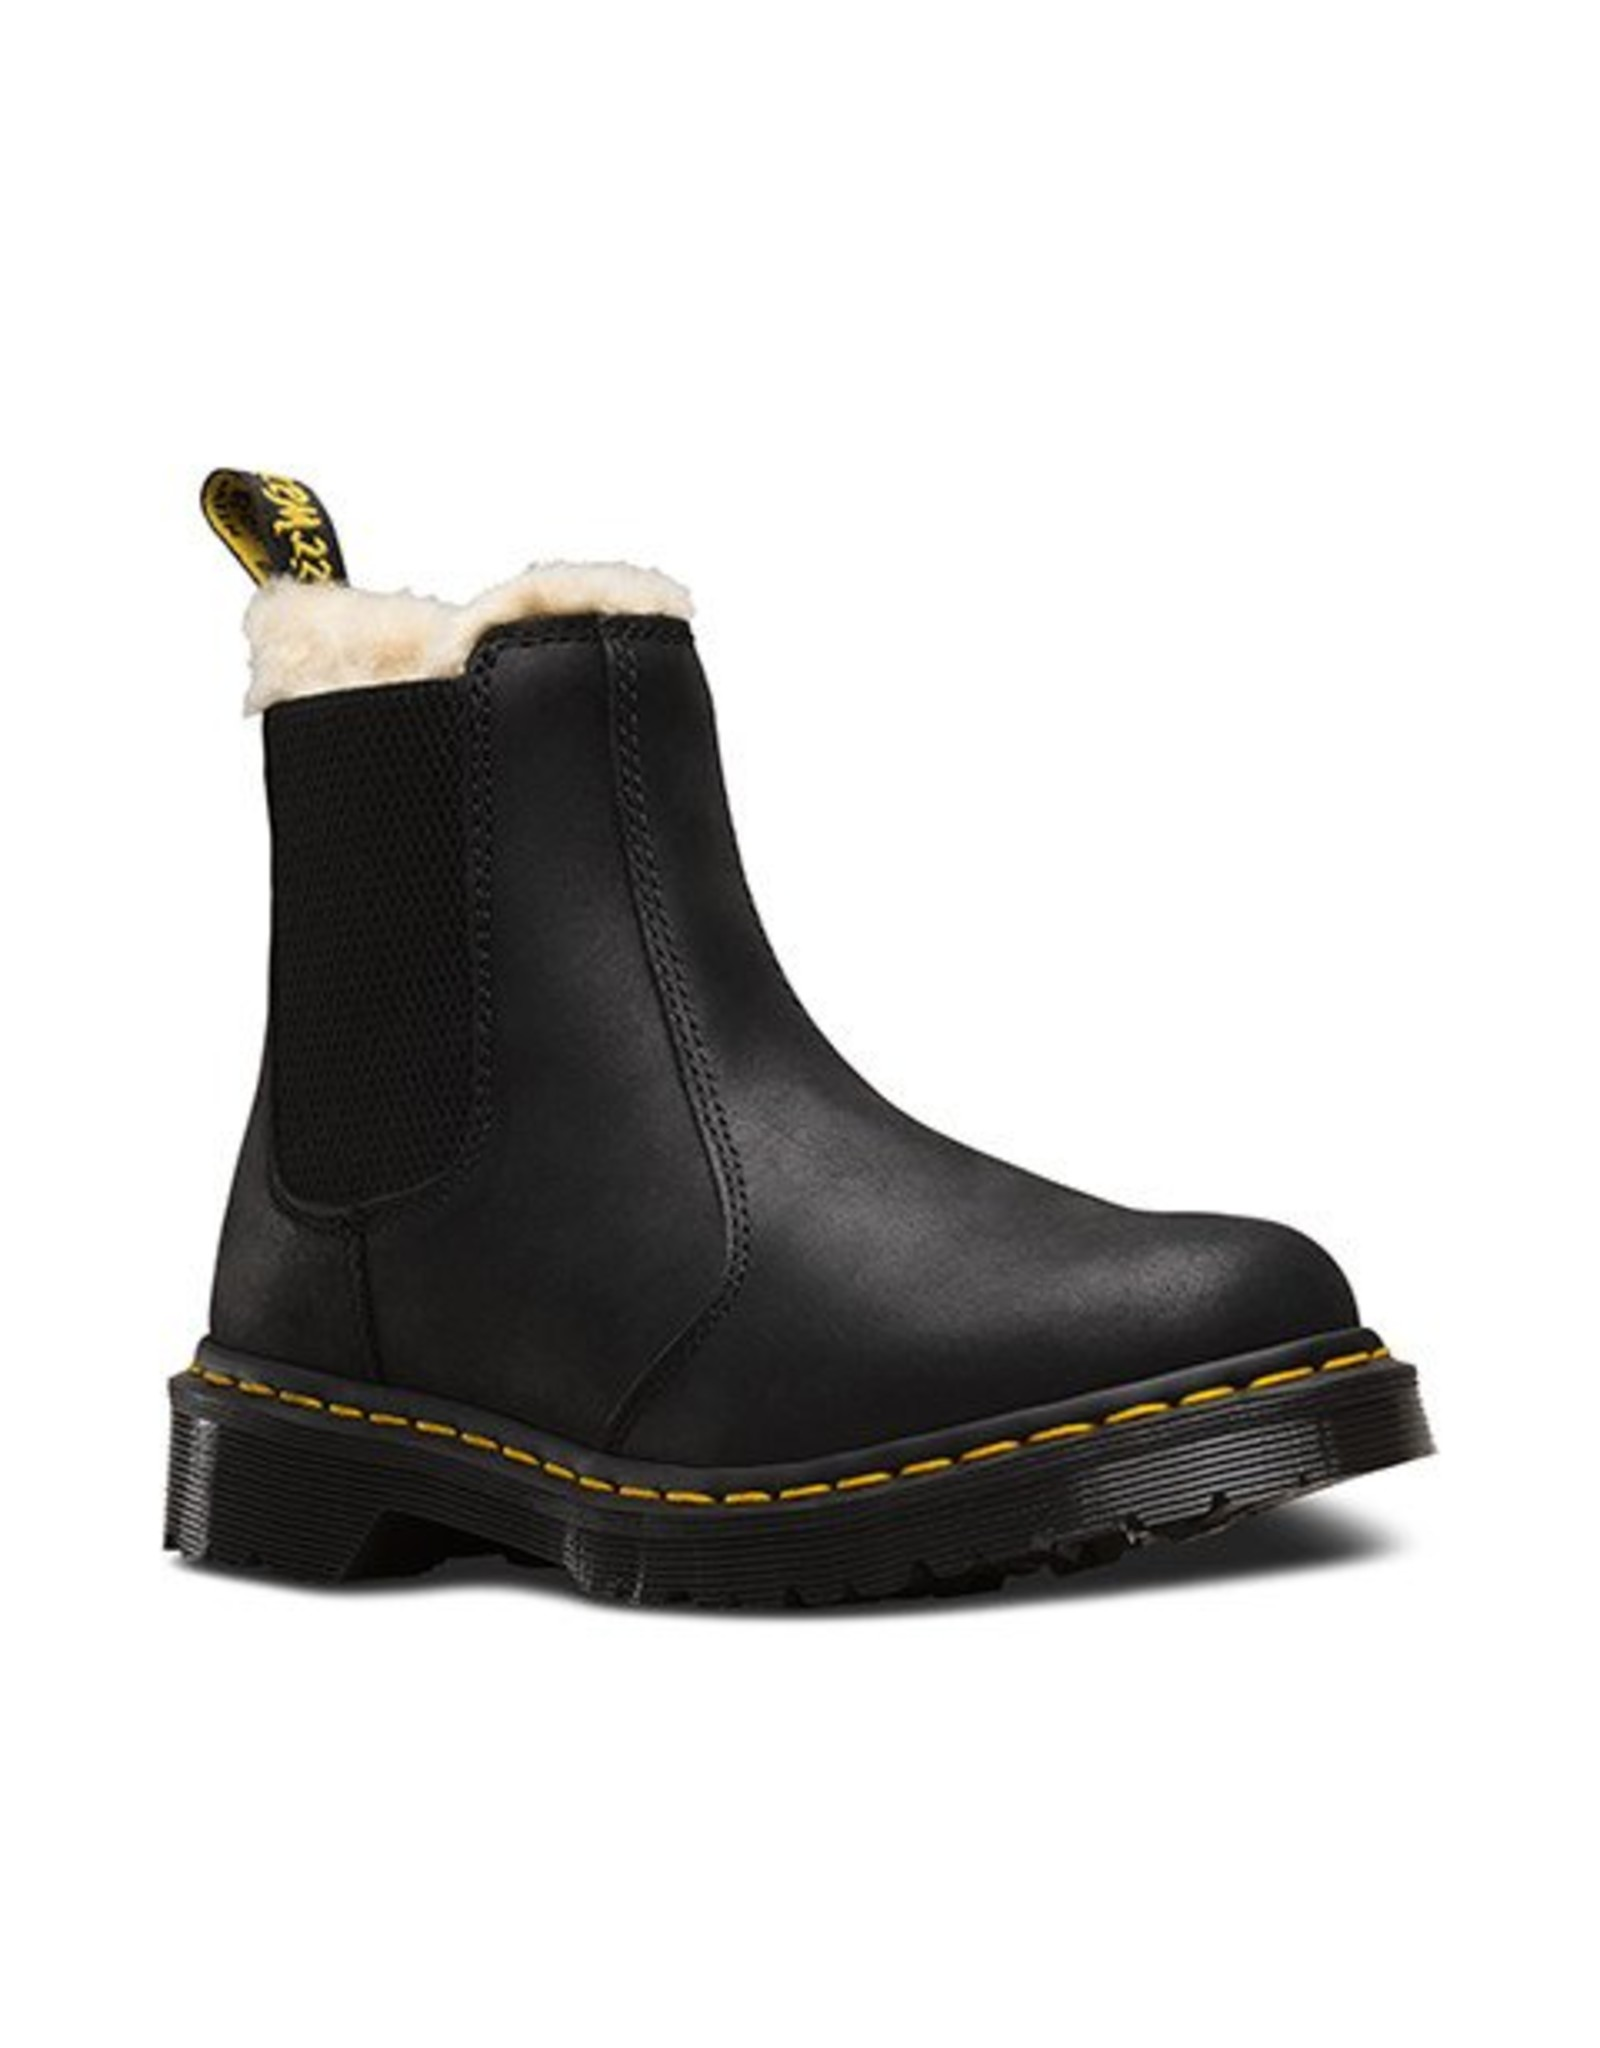 DR. MARTENS FUR LINED LEONORE WYOMING BLACK BURNISHED WYOMING E15B-R21045001